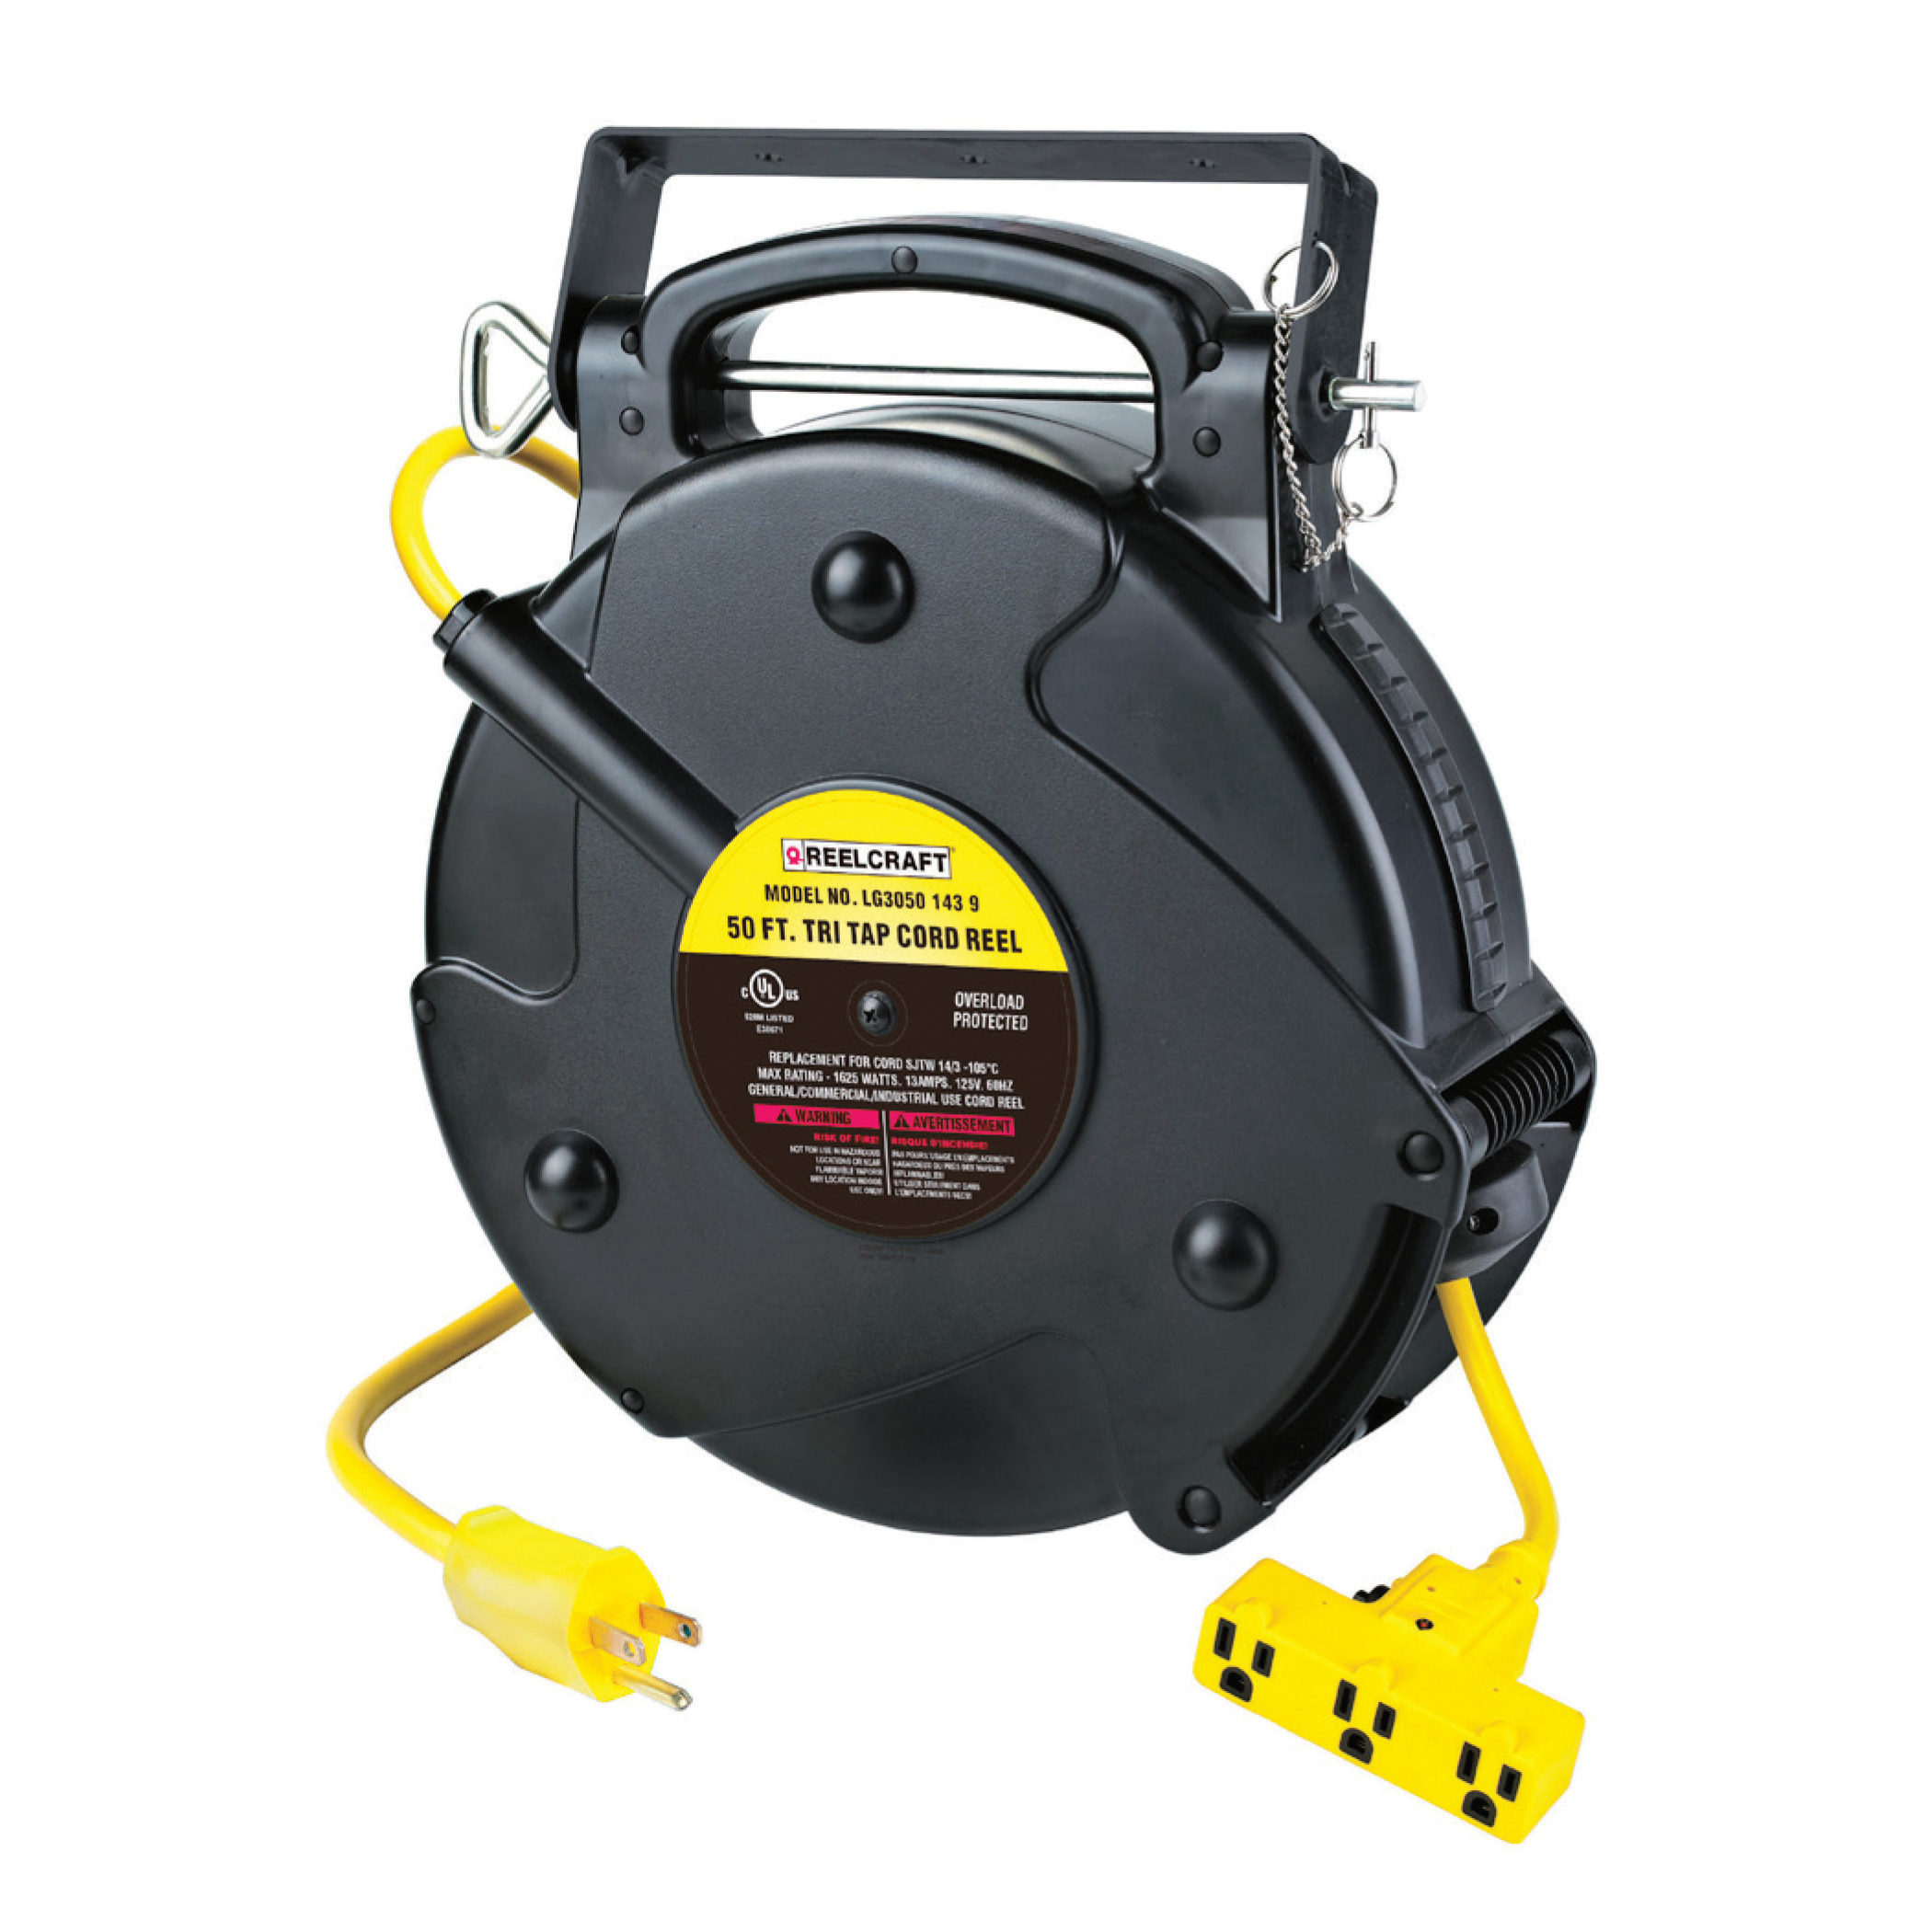 Reelcraft® LG3040 123 9 Retractable Power Cord Reel With SJTW Cord, 125 VAC, 15 A, 40 ft L Cord, 12 AWG Conductor, 3 Outlets